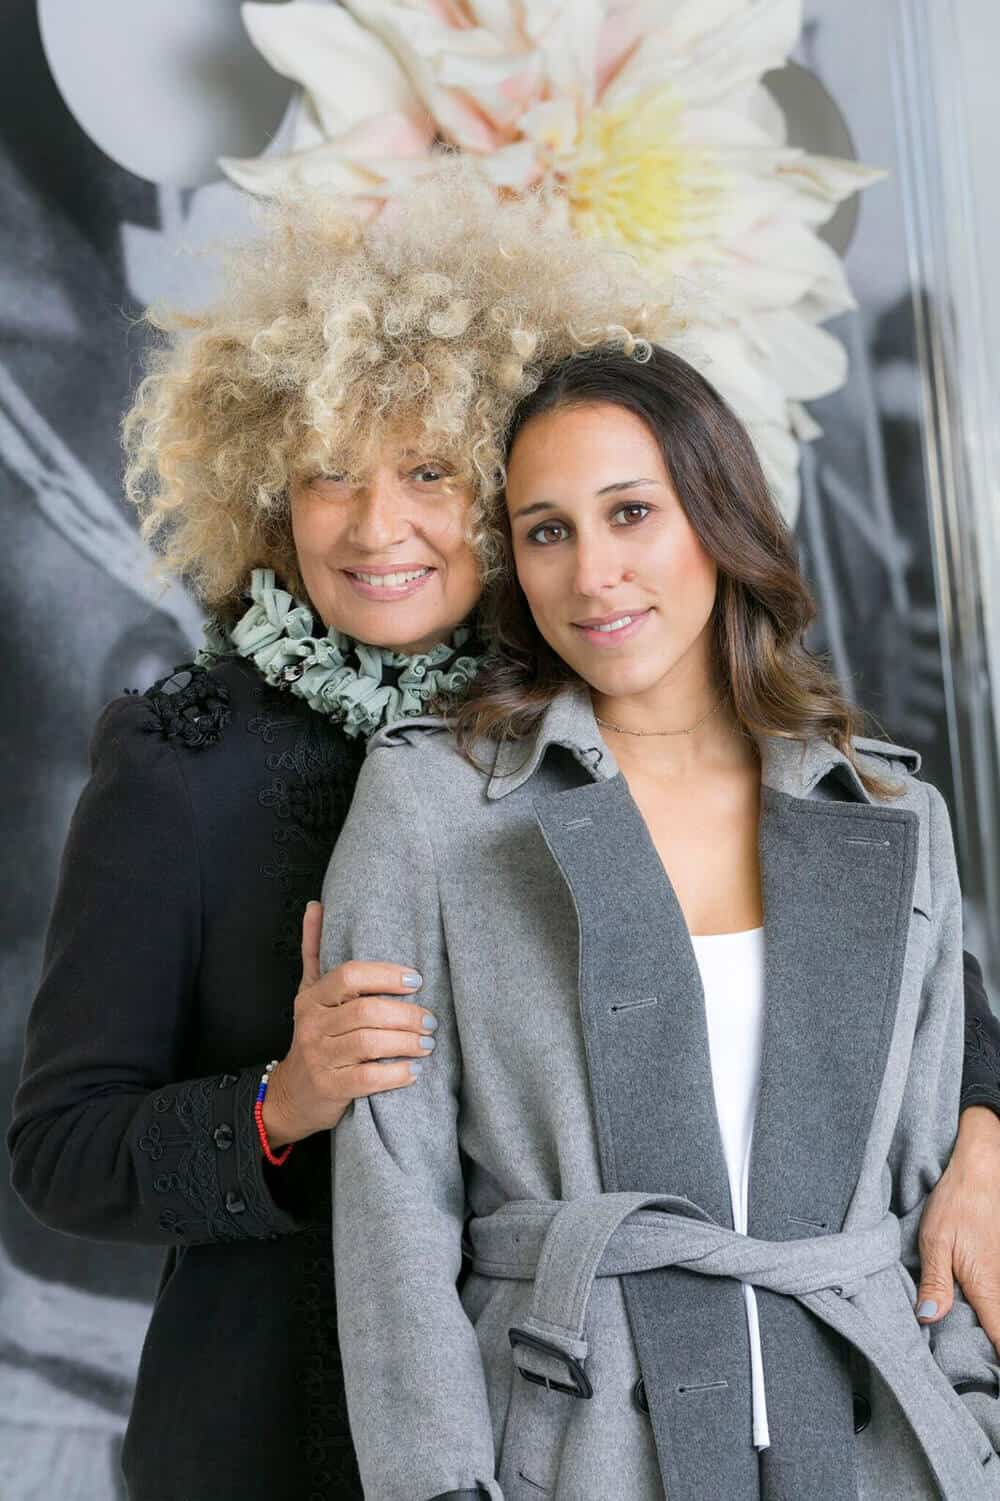 Owanto (left) and Katya Berger (right), 2018. The filiation between mother and daughter, artist and producer. Courtesy of the artist.